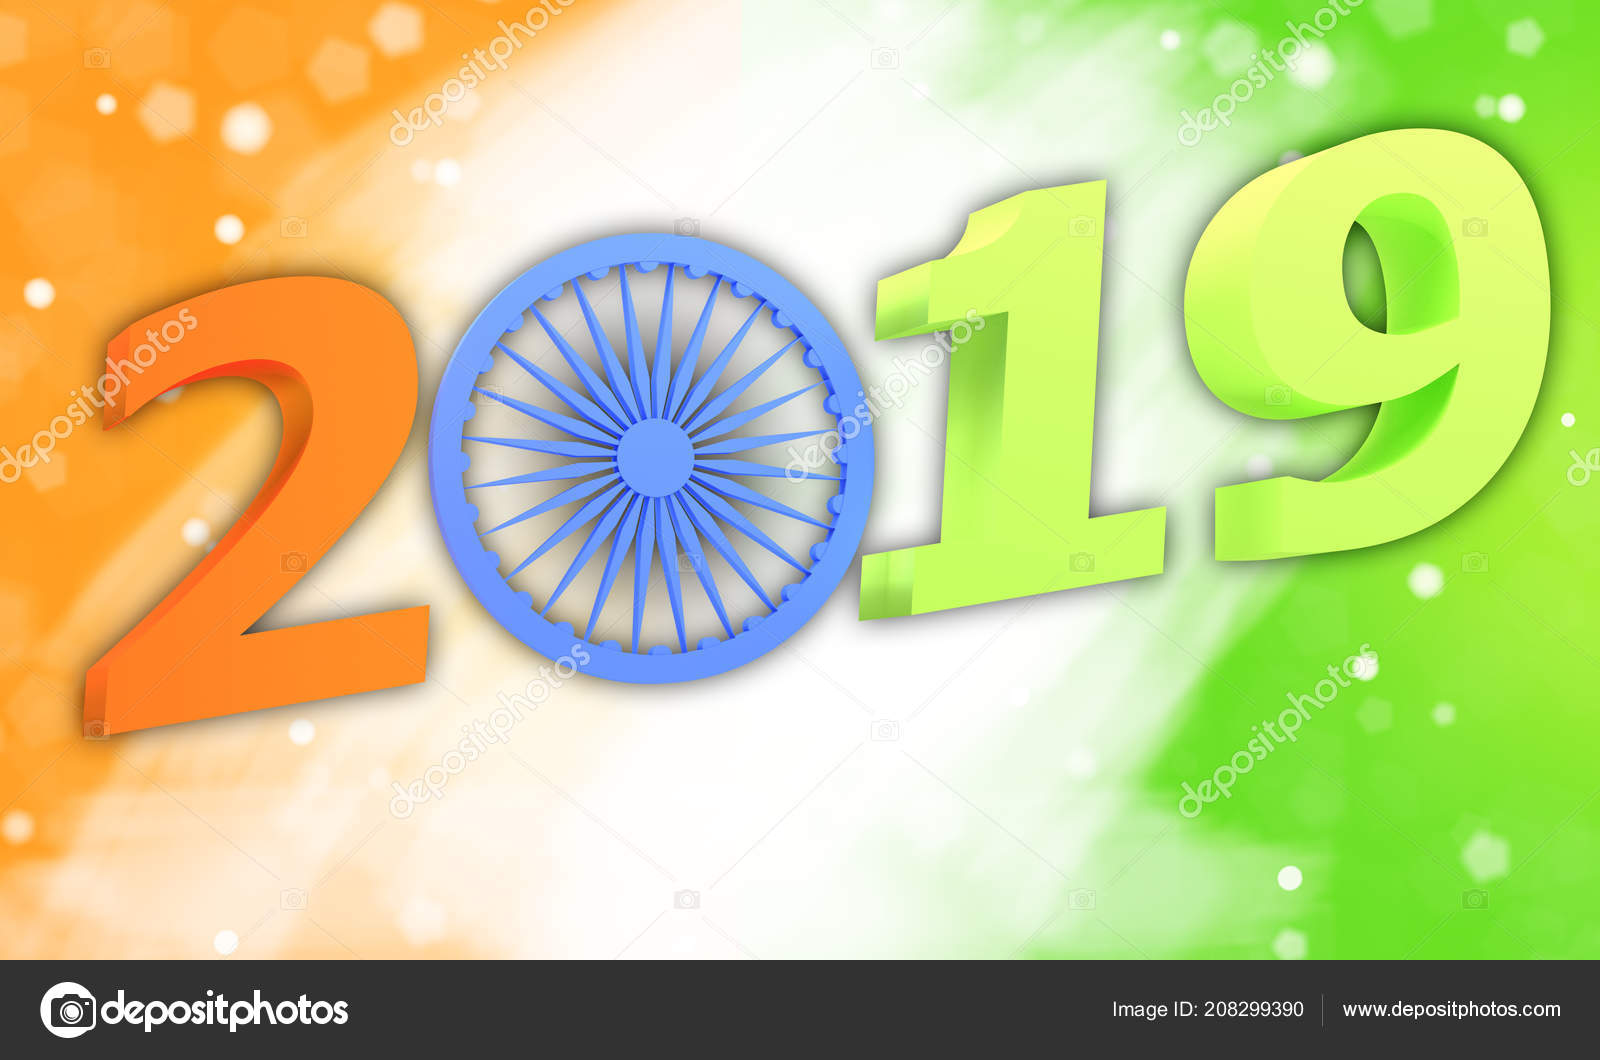 3d Illustration Indian Republic Day Concept With Text 2019 Stock Photo C Maksimka3738 208299390